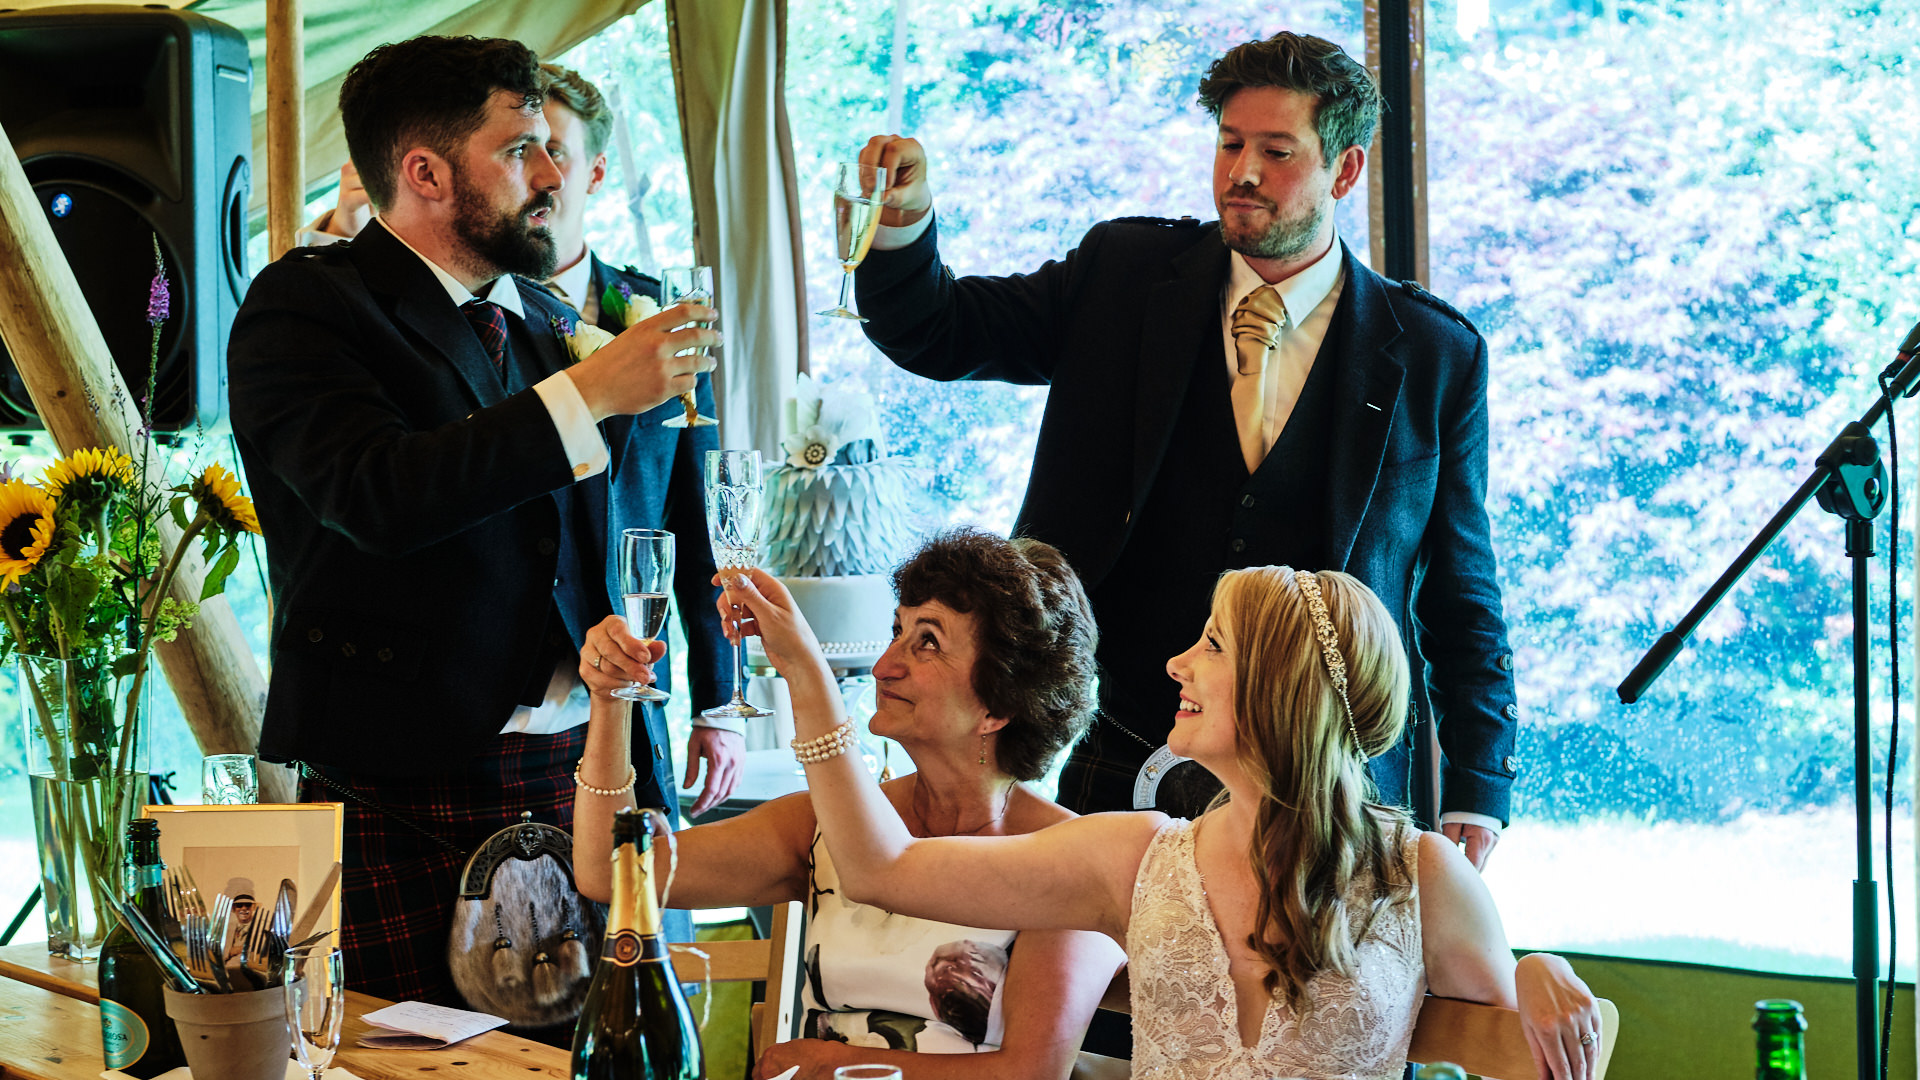 colour photograph of the best man  giving a toast to the bride and groom after his speech speech while the wedding party are raising their glasses